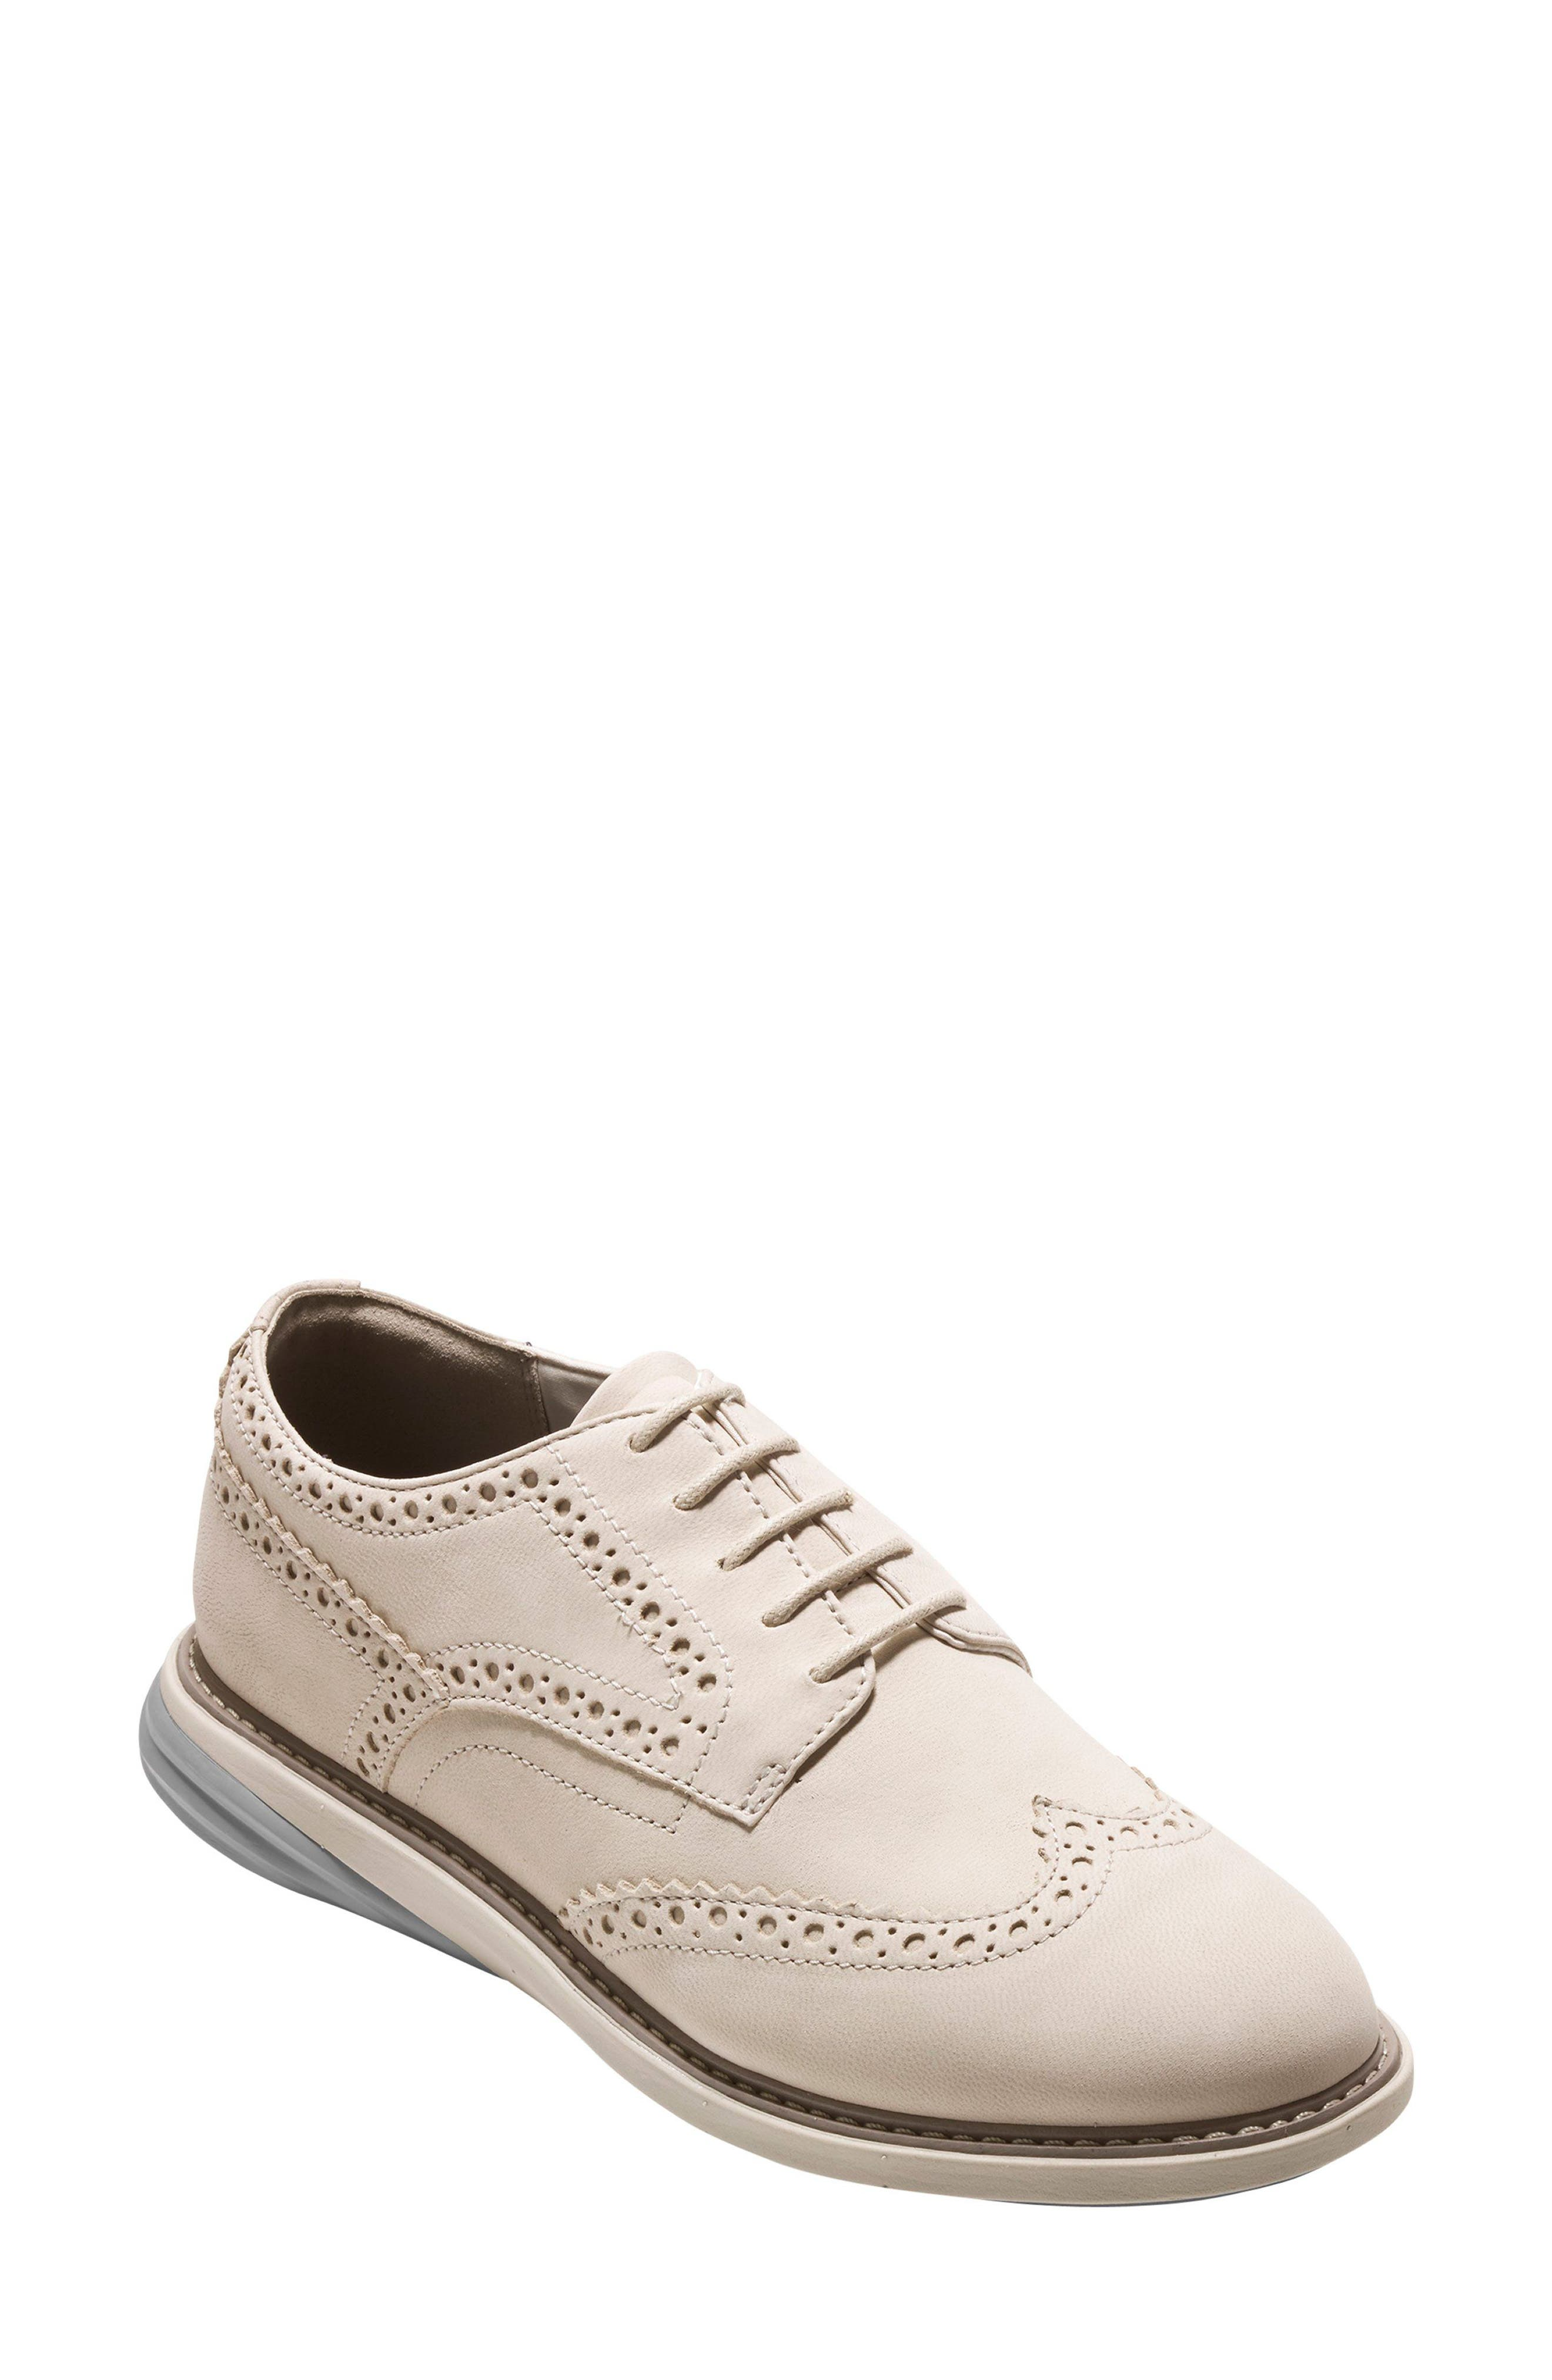 Alternate Image 1 Selected - Cole Haan Grandevolution Shortwing Oxford Sneaker (Women)